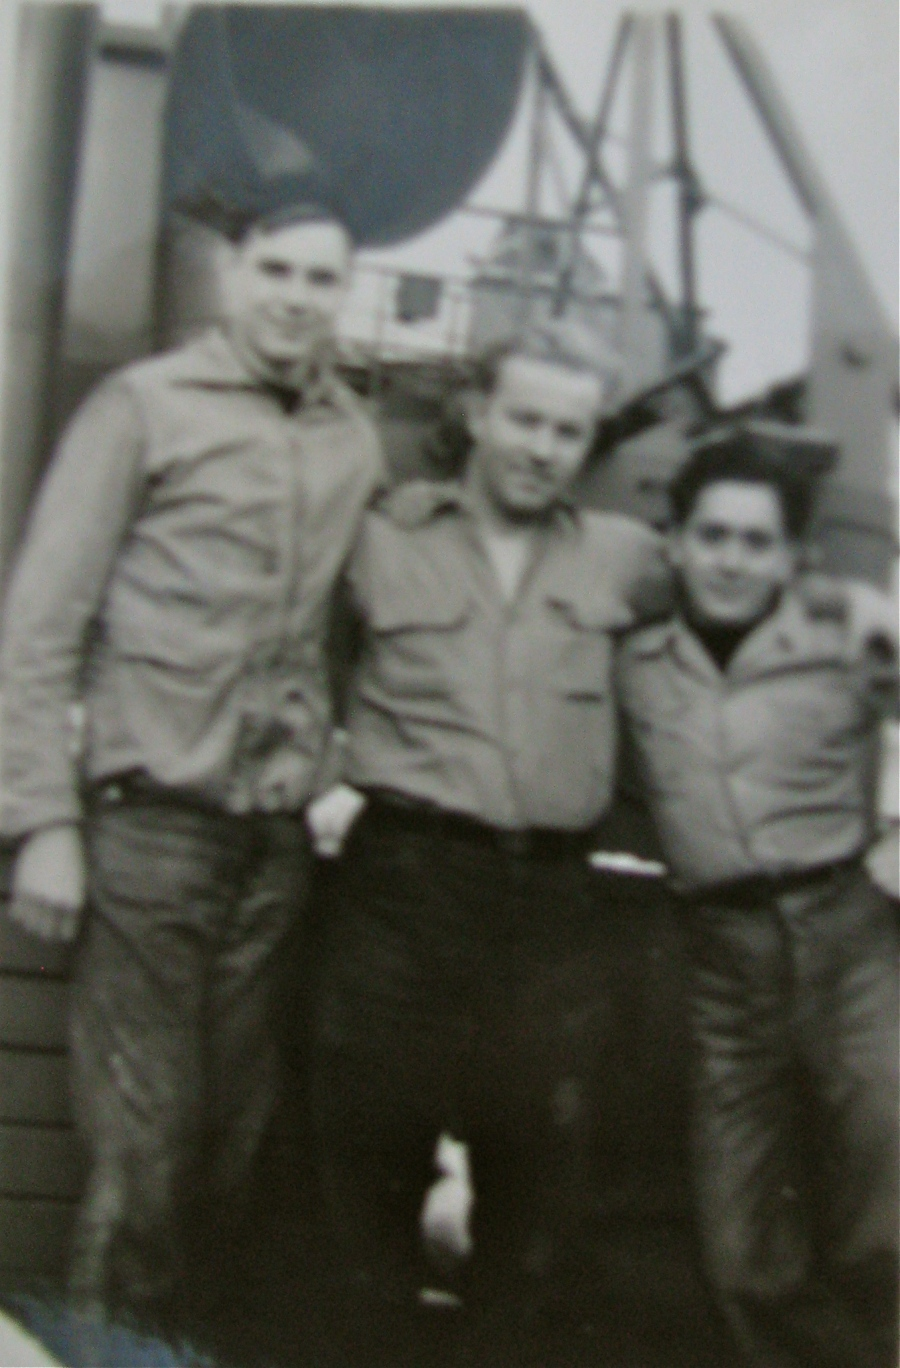 Power (left) with two buddies from long ago aboard Y-Boat-71 en route to war. Photo provided